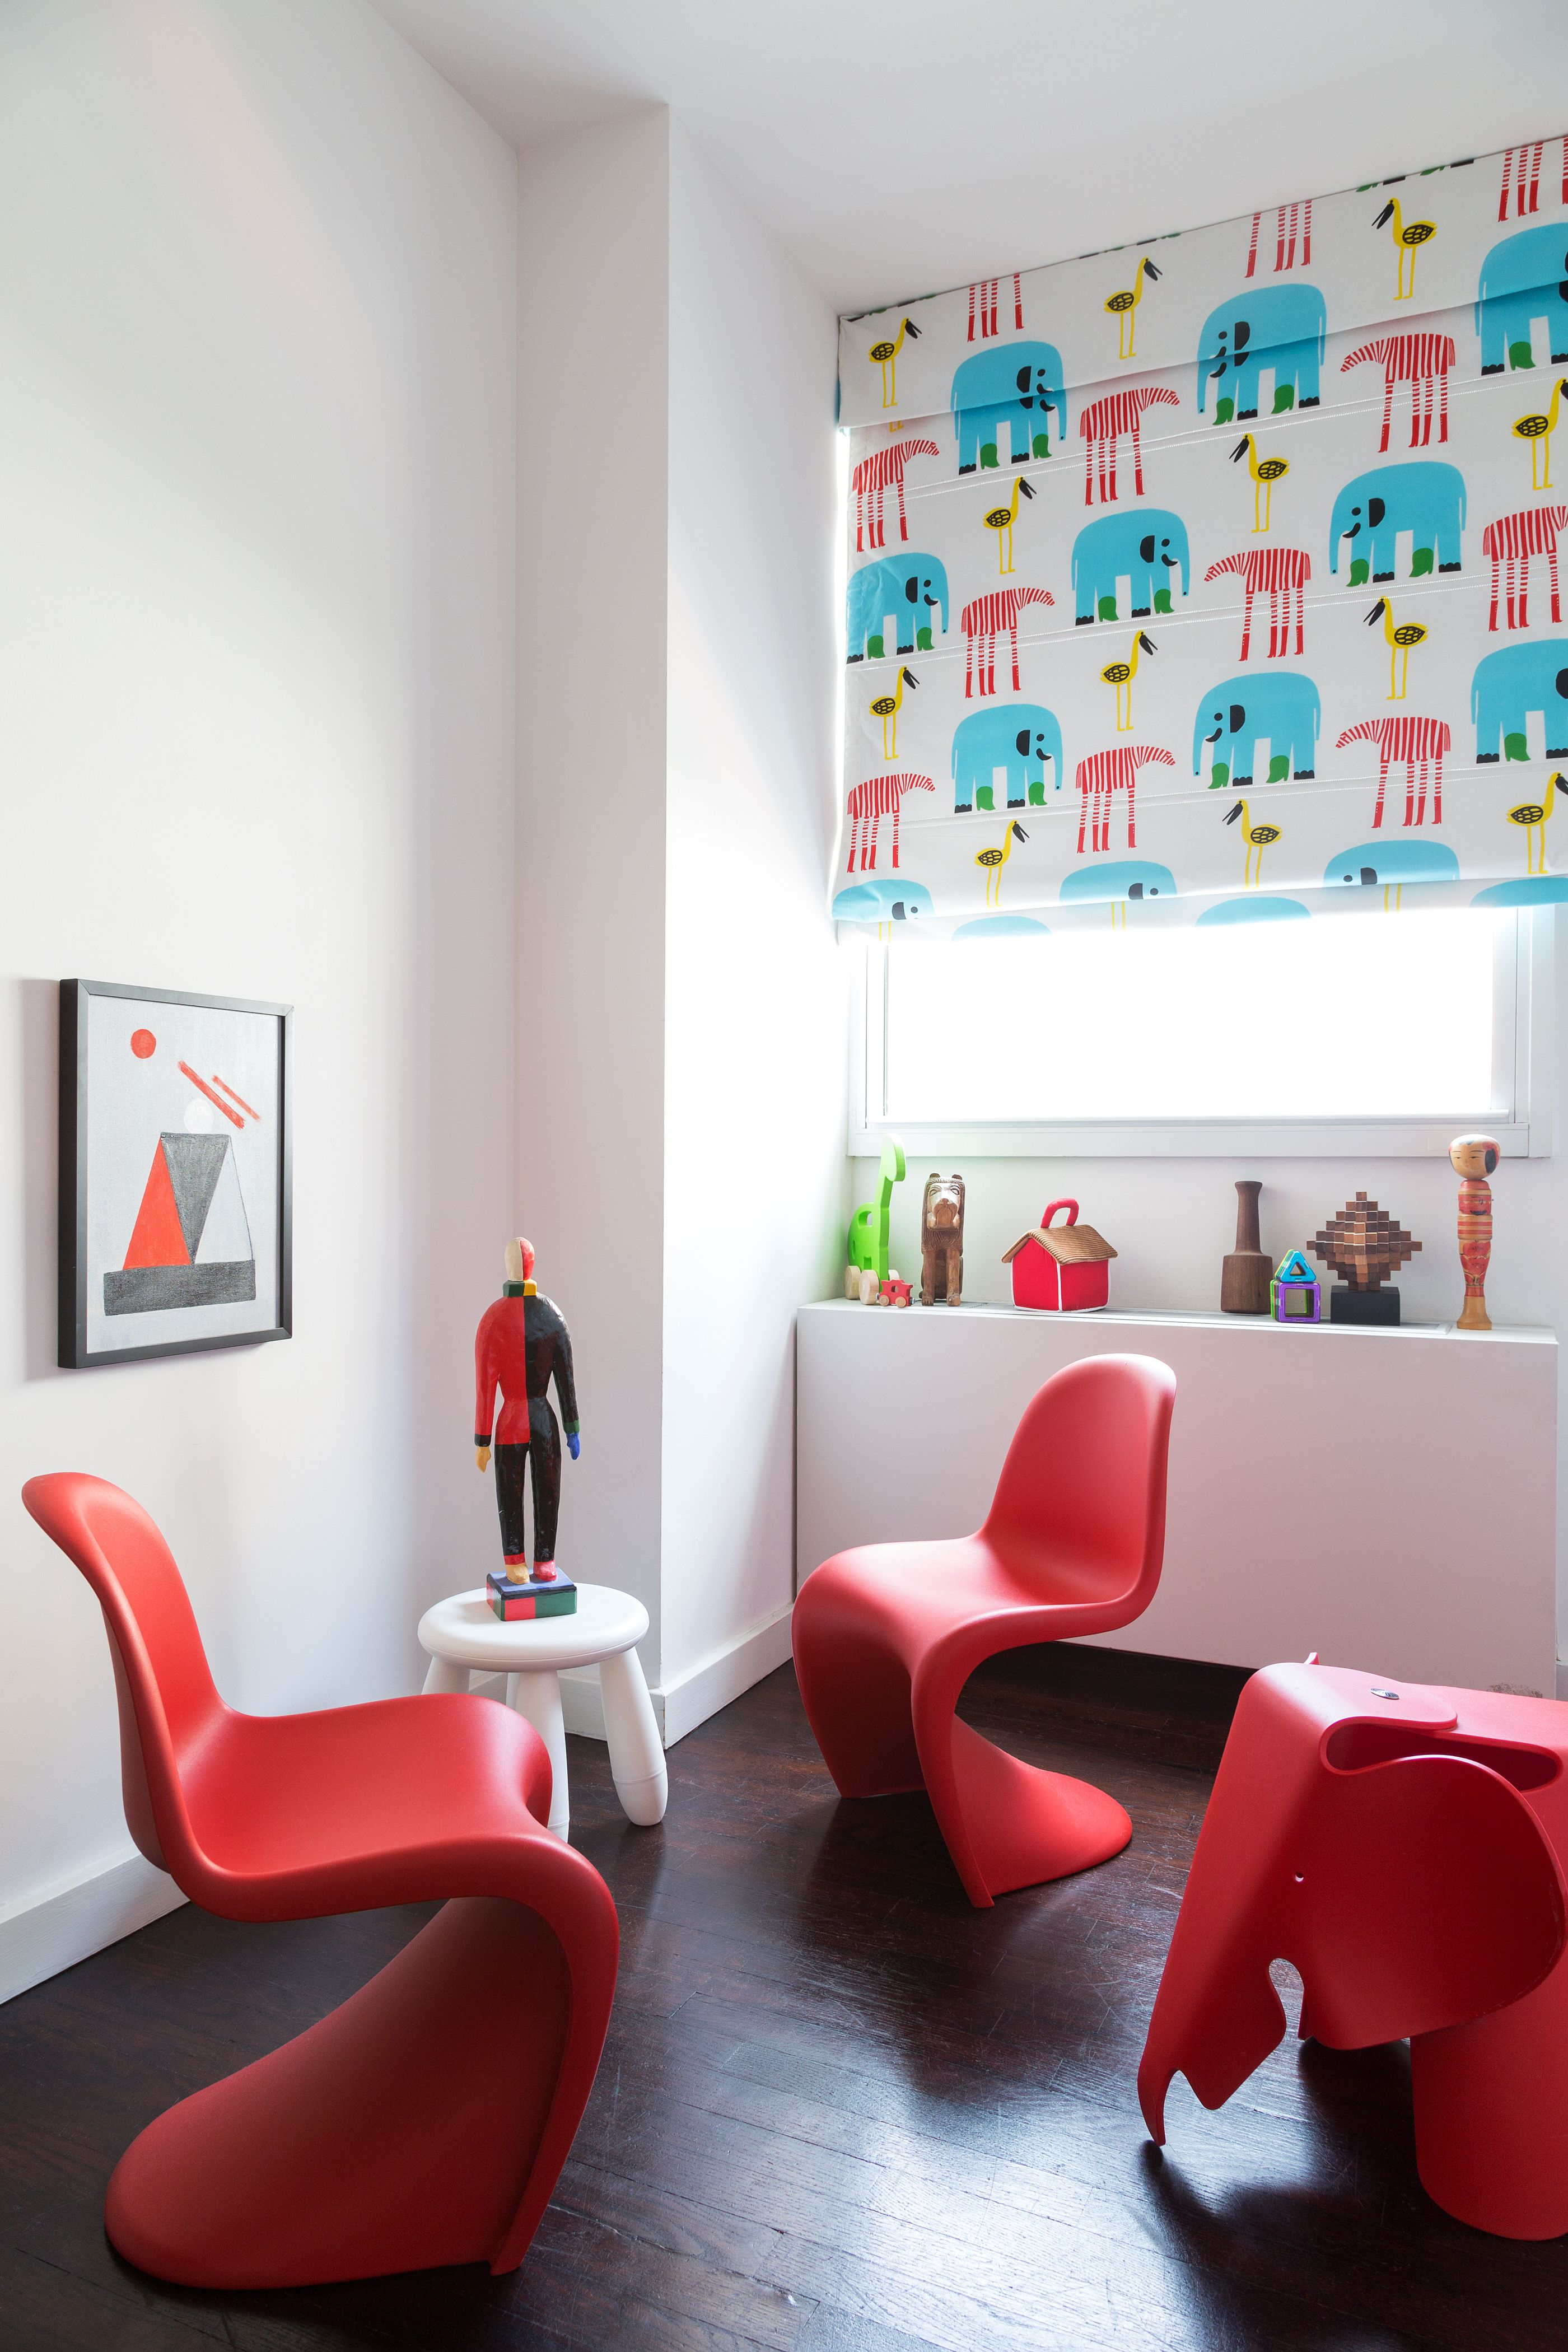 Best Photos From Furnish By Color: Red | Red Chairs! | Playroom